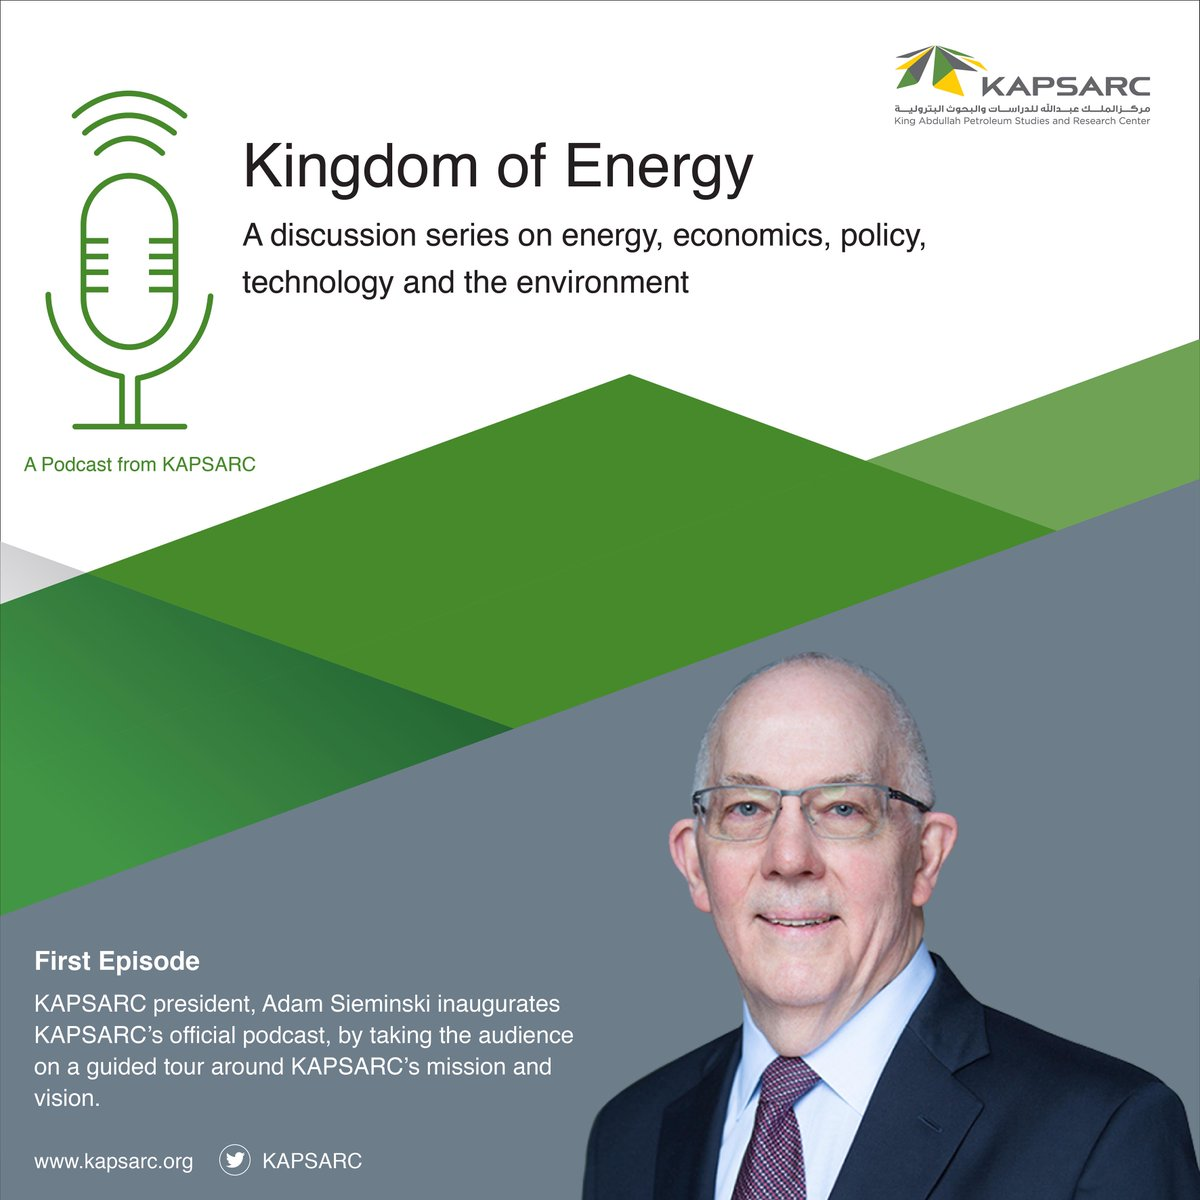 #KAPSARC launches Kingdom of Energy, a #podcast created by and  targeted energy experts. Tune in for the latest on #energy, economics, policy, technology and the #environment.Listen now: https://bit.ly/2Qeb644